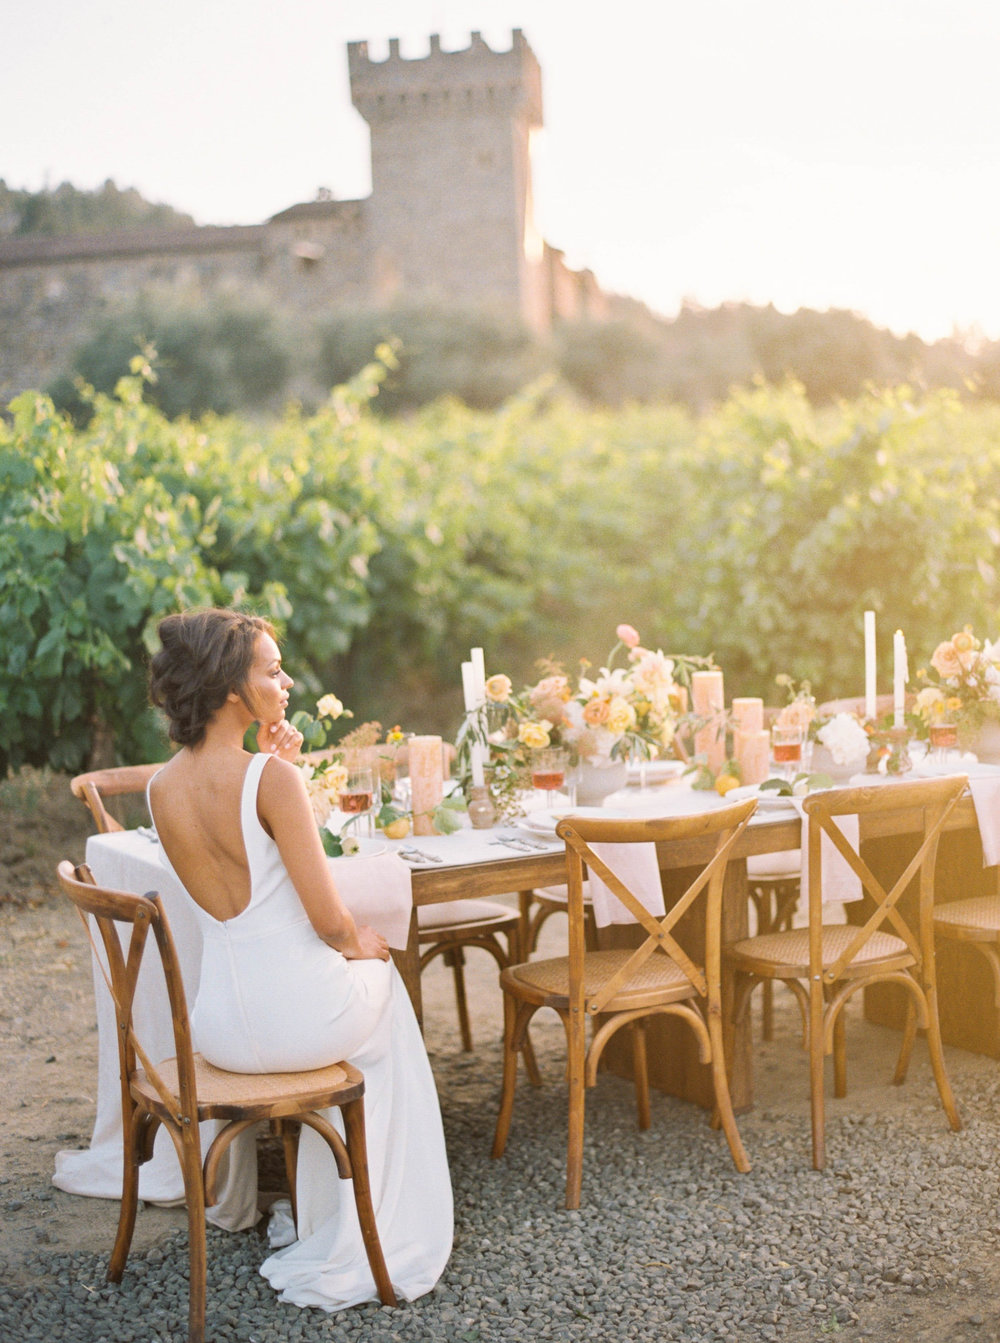 068napa_wedding_photographer_and_videographer_destination_and_elopement_photography.jpg